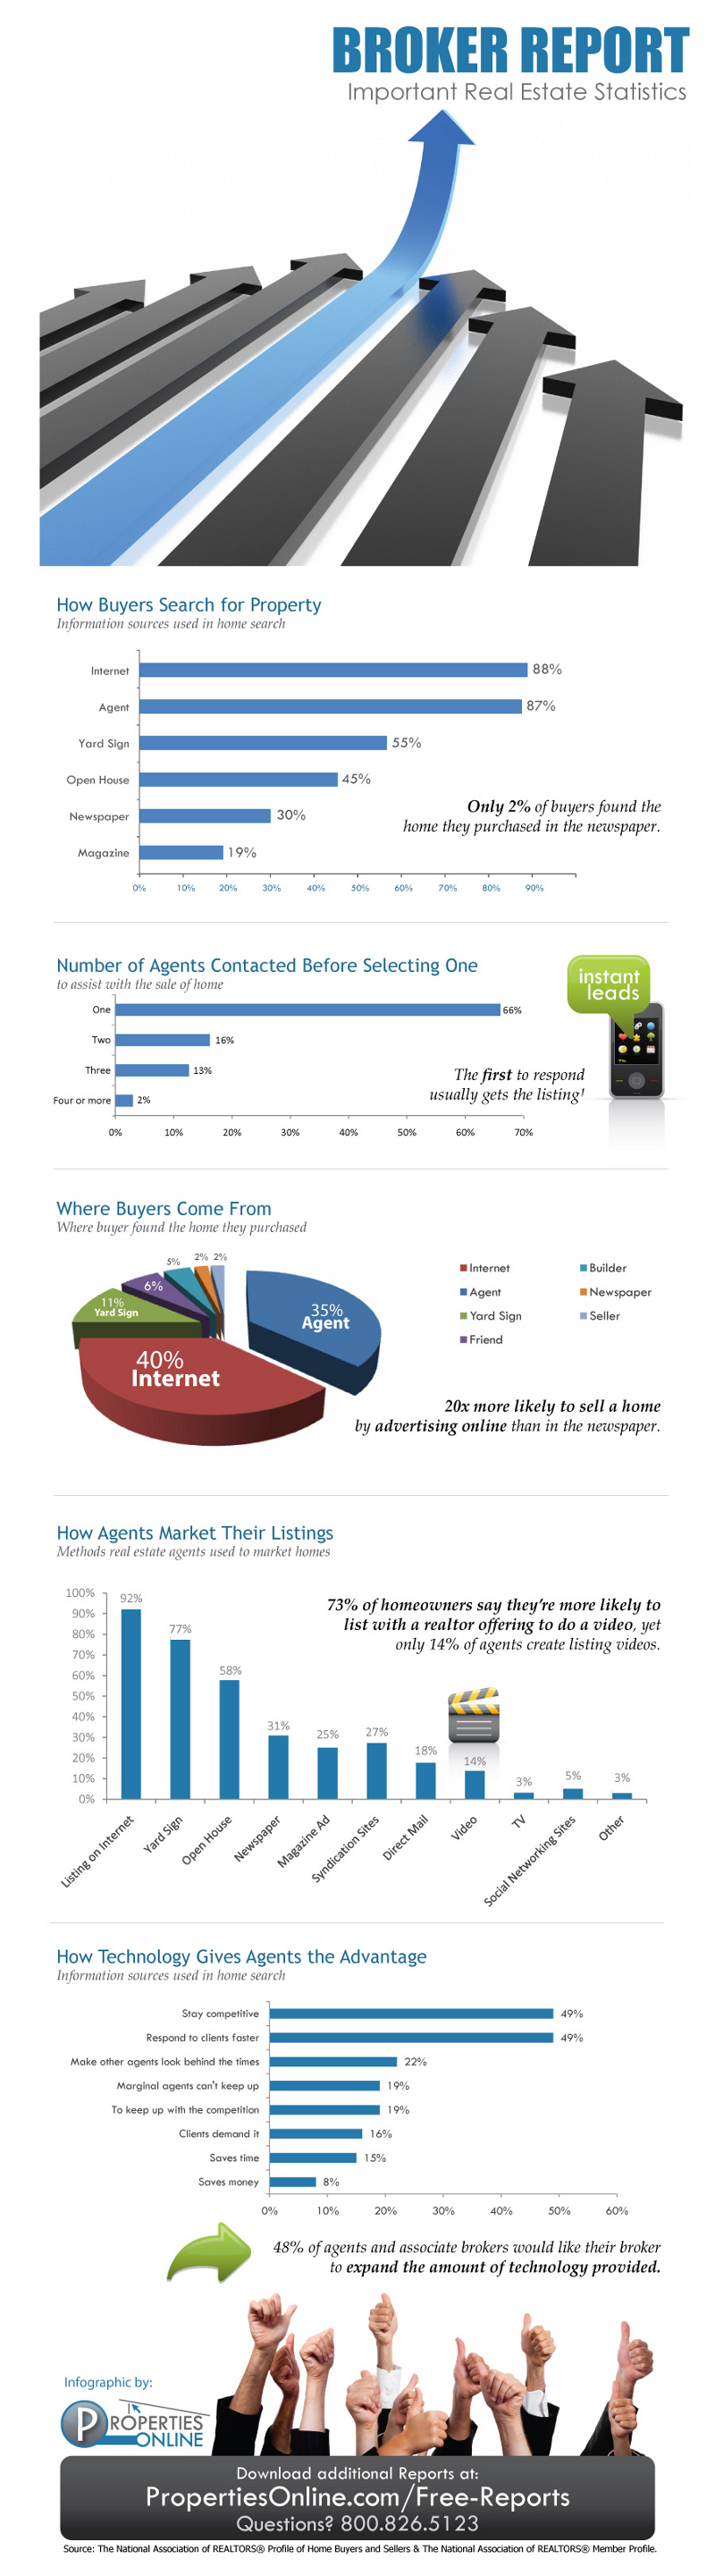 27 Significant First Time Homebuyer Statistics and Trends